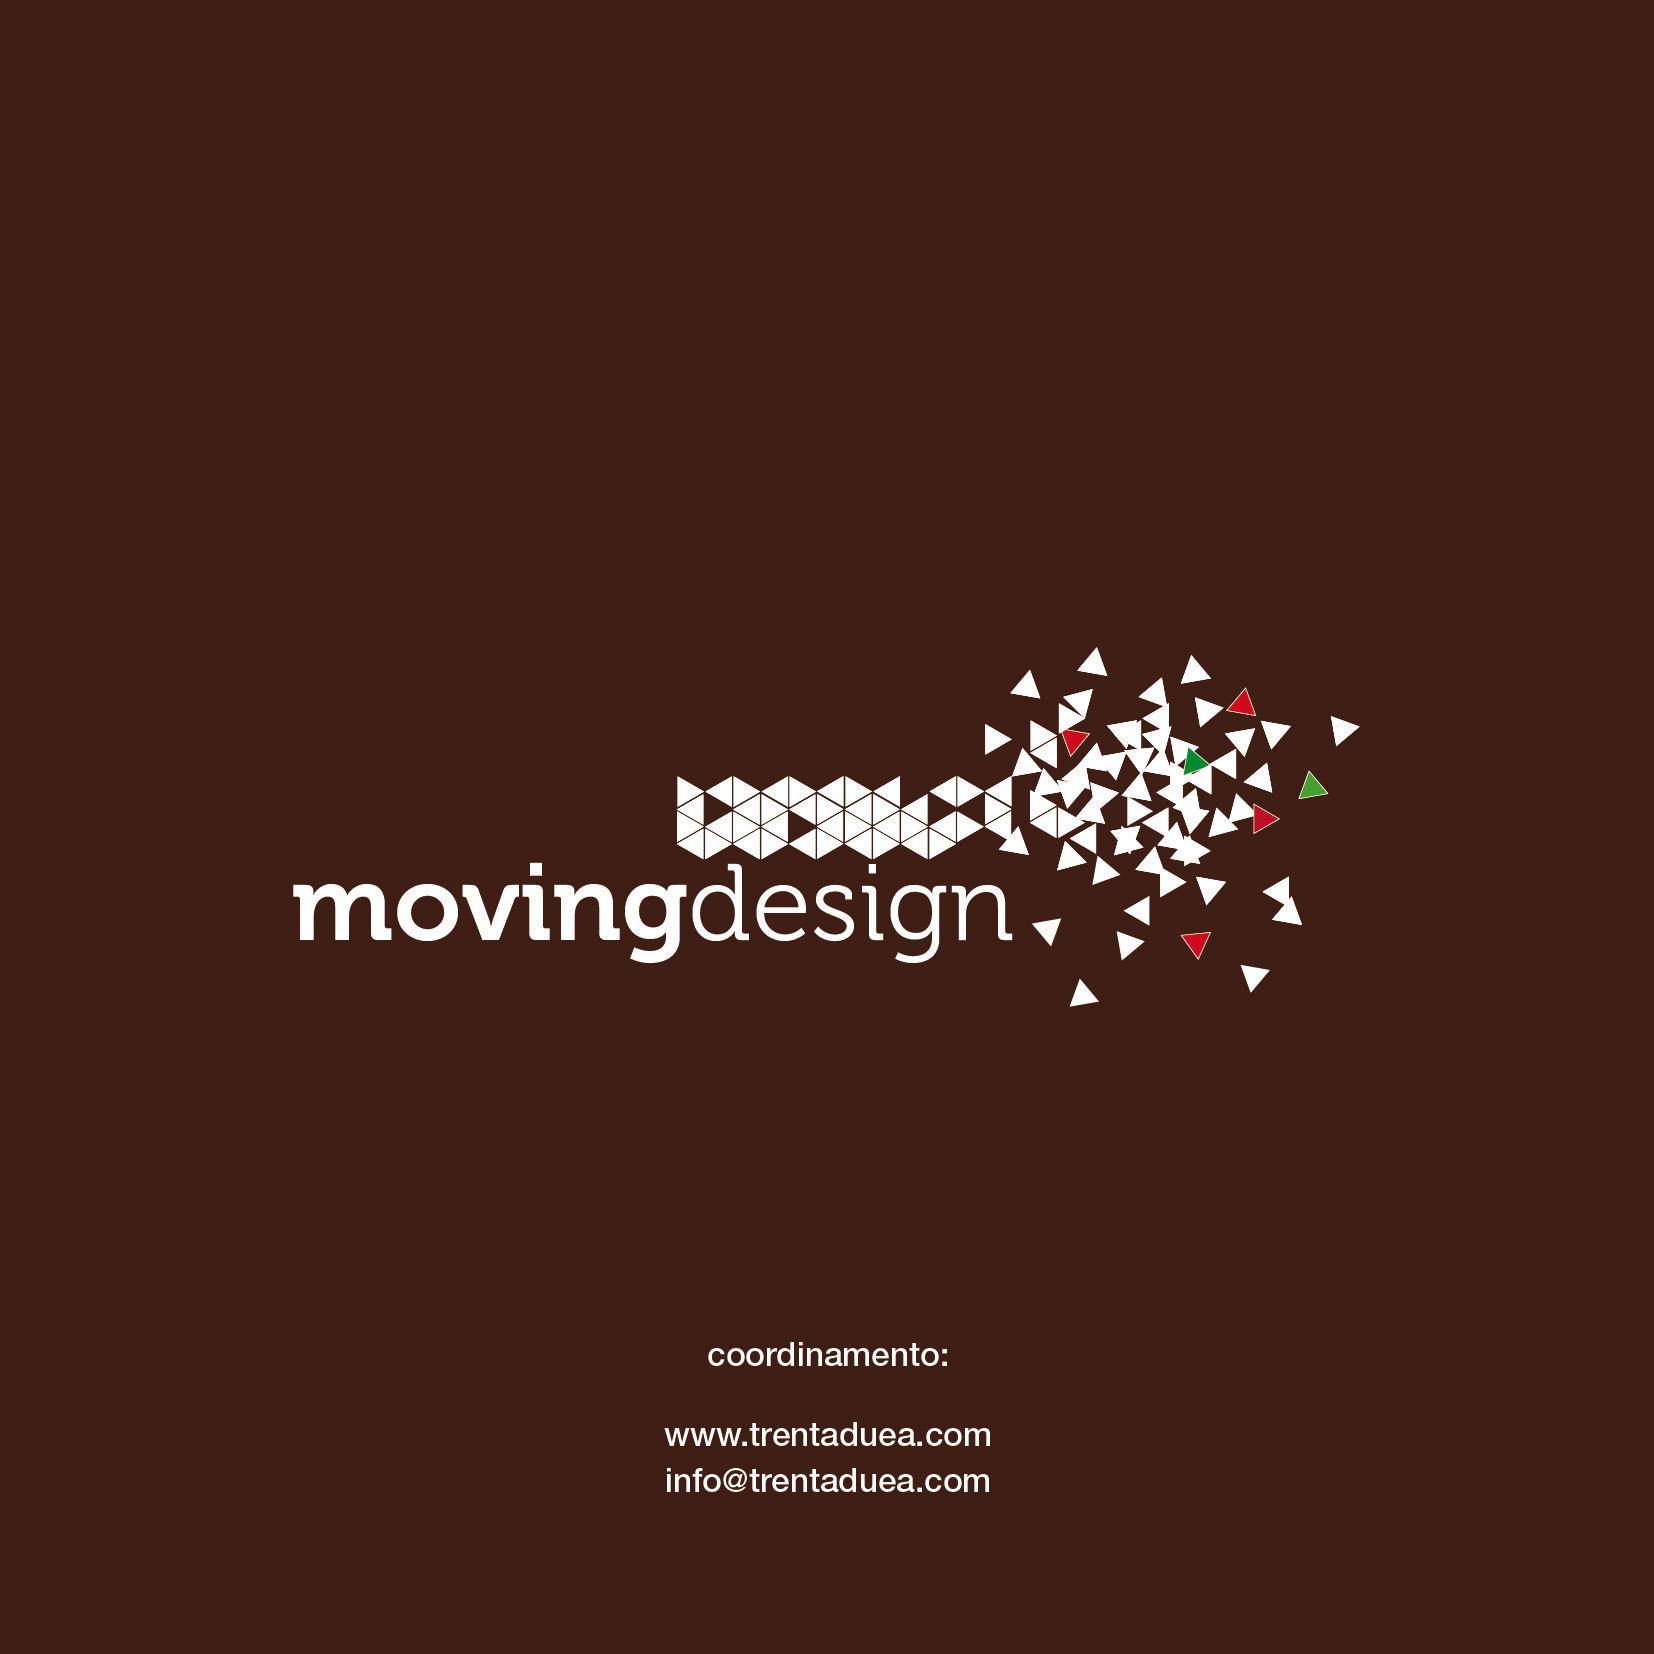 opuscolo-def-moving-design9